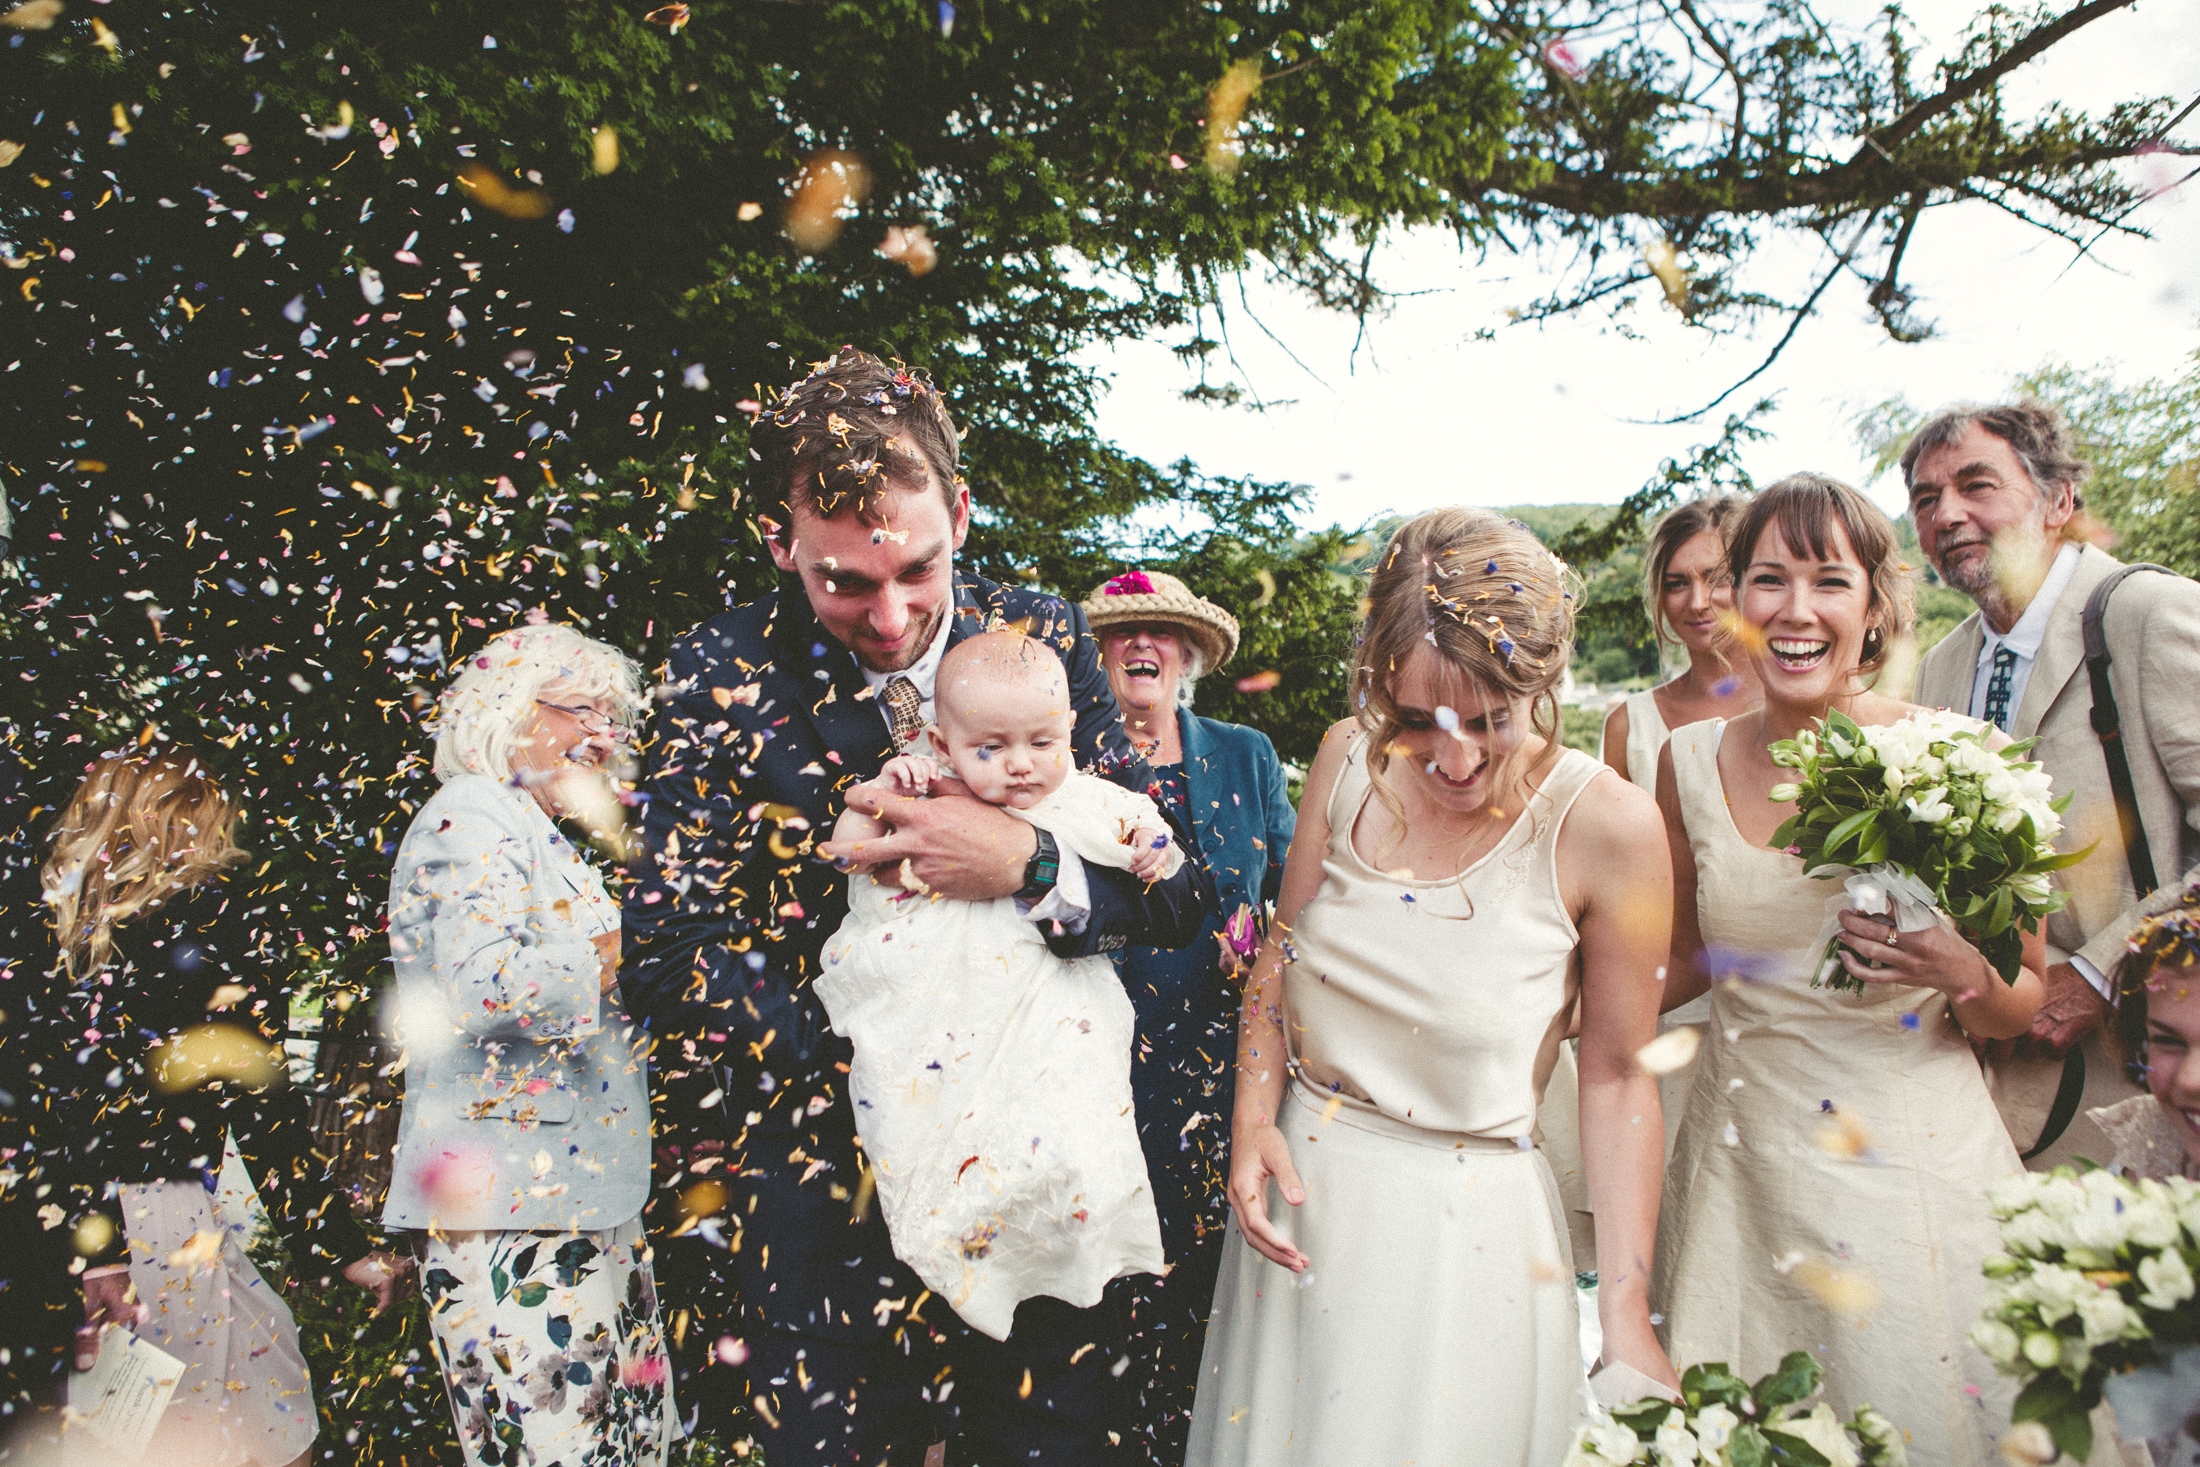 Naomi-Hamish Confetti Wedding